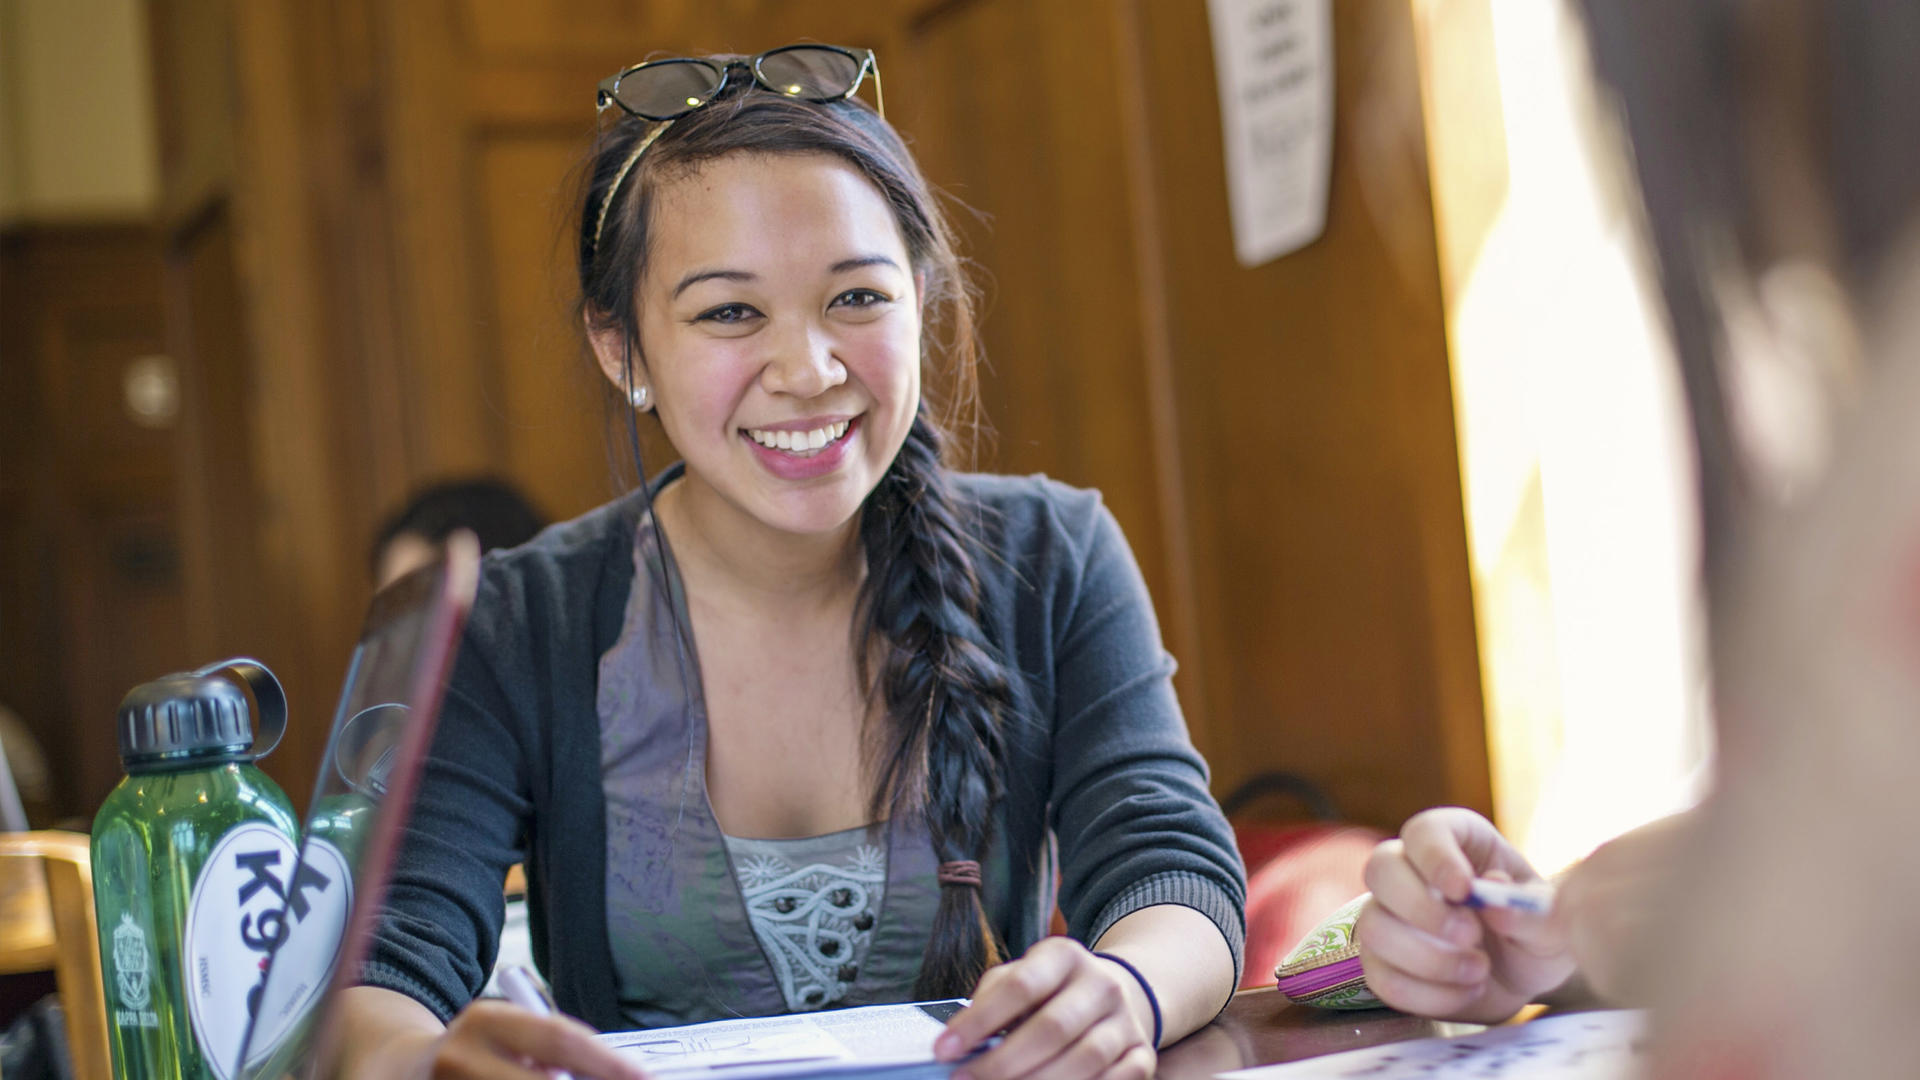 a student smiling and studying in the refectory